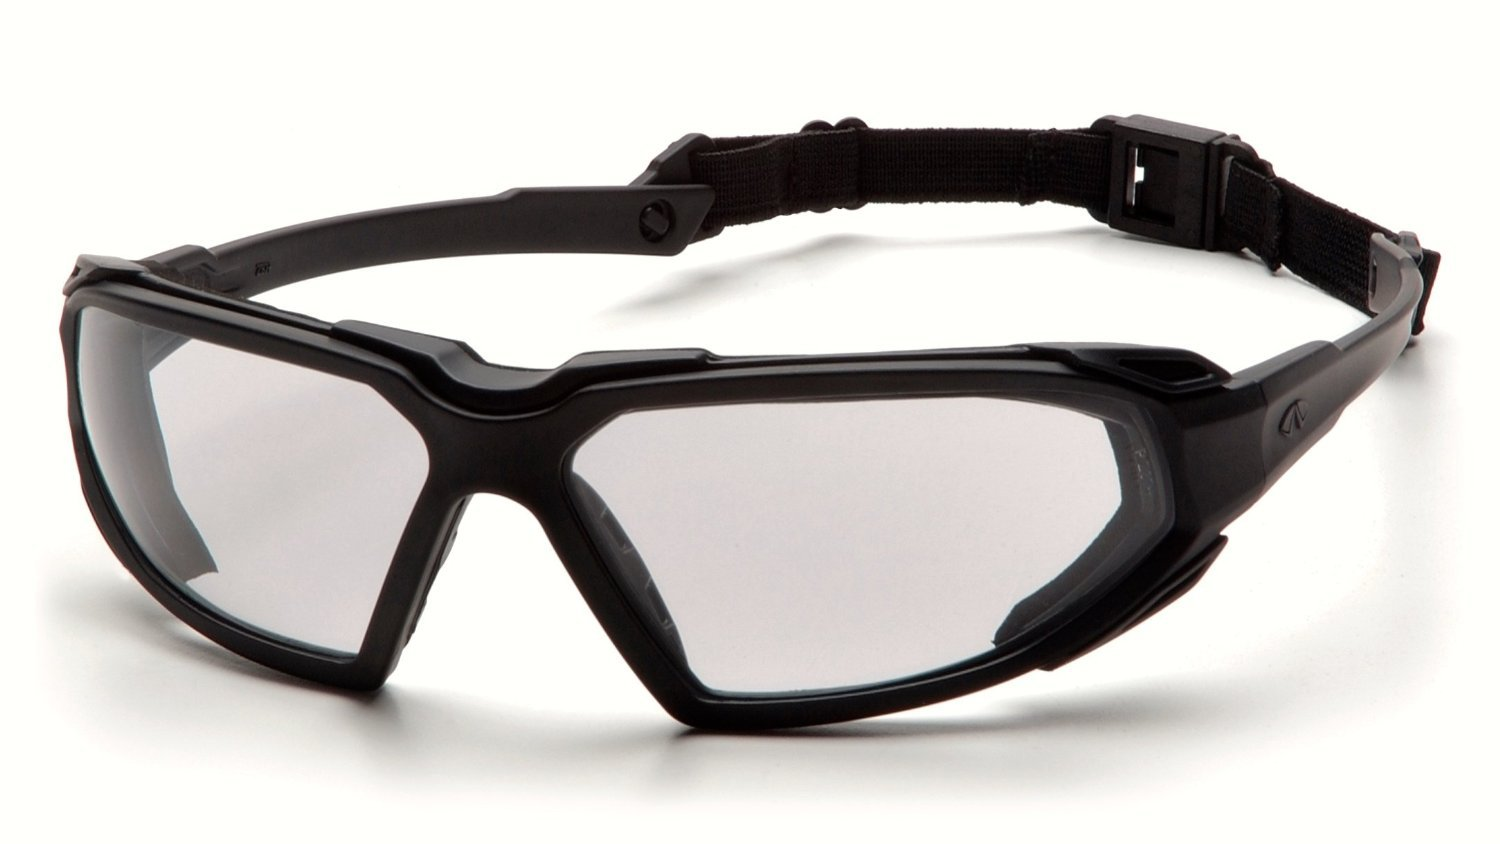 2a9e0be6d39e Pyramex Highlander Safety Eyewear